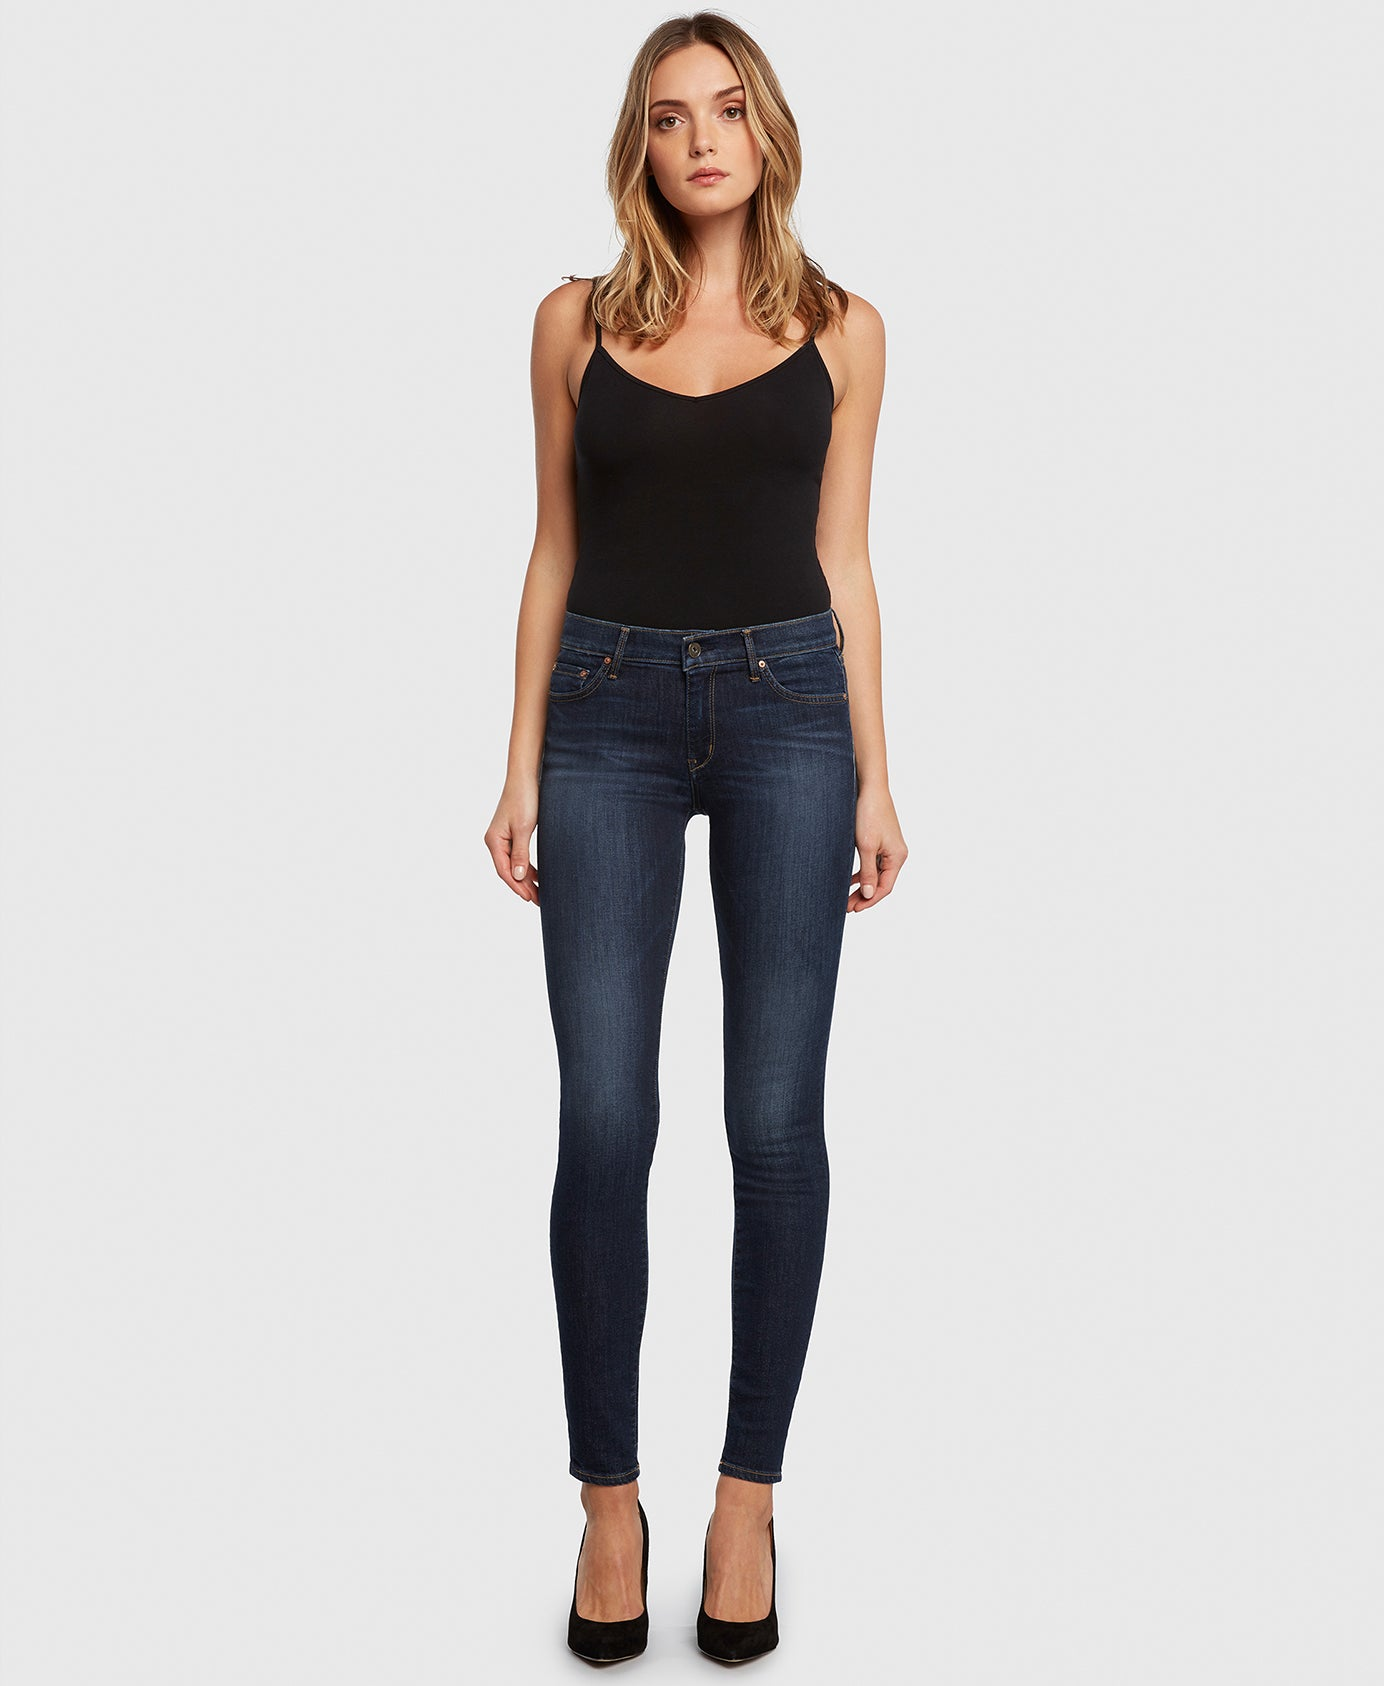 Principle DREAMER in Poison Heart dark wash skinny jeans